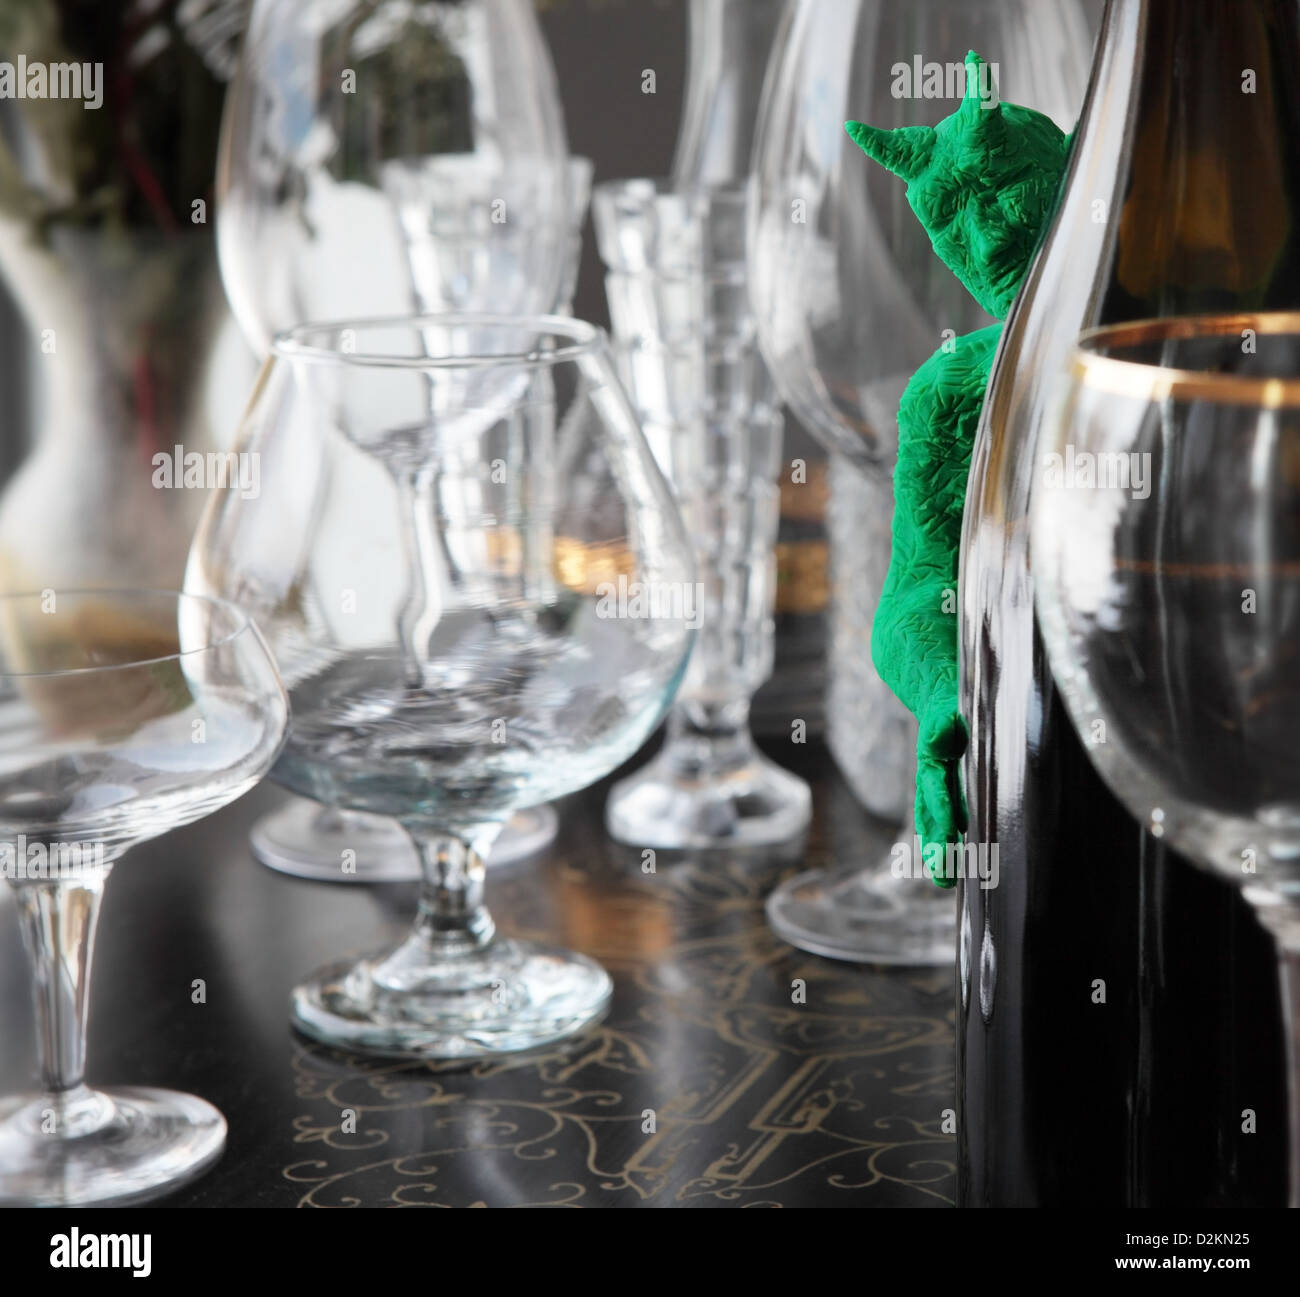 a little green devil peeks out from behind a bottle of wine. A variety of drinking glasses are spread out on an - Stock Image